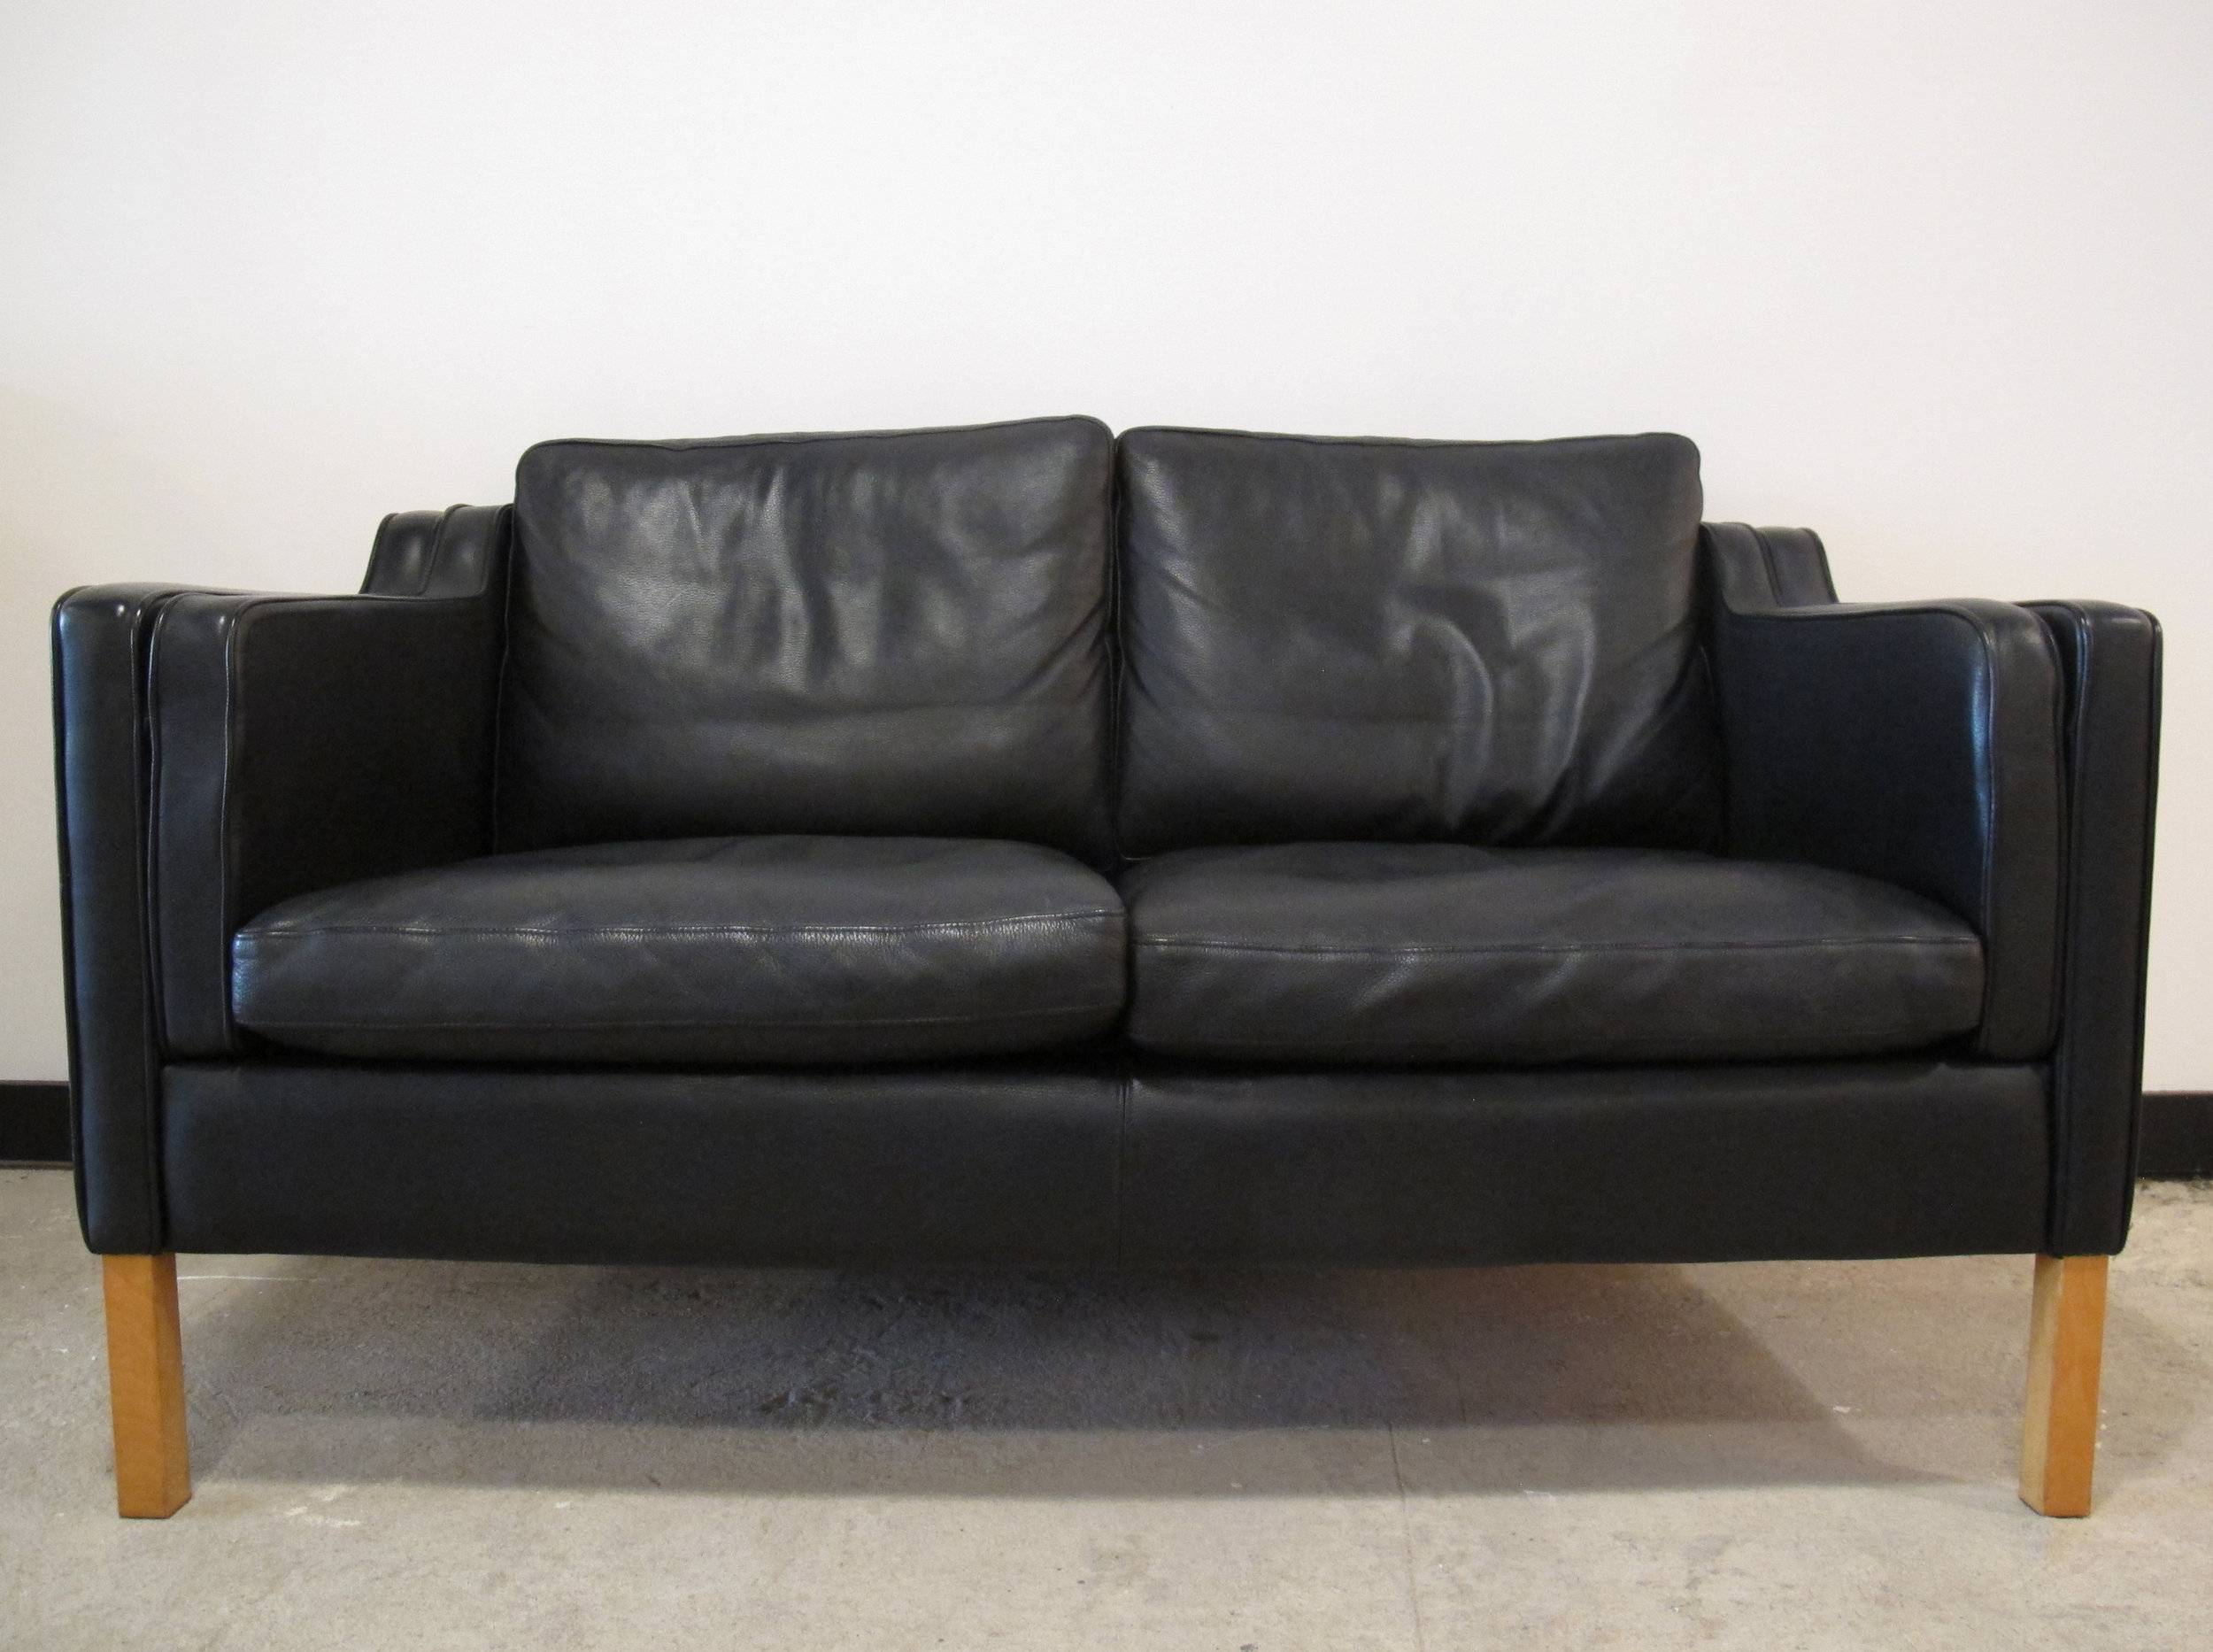 DANISH BORGE MOGENSEN STYLE LEATHER SOFA BY STOUBY